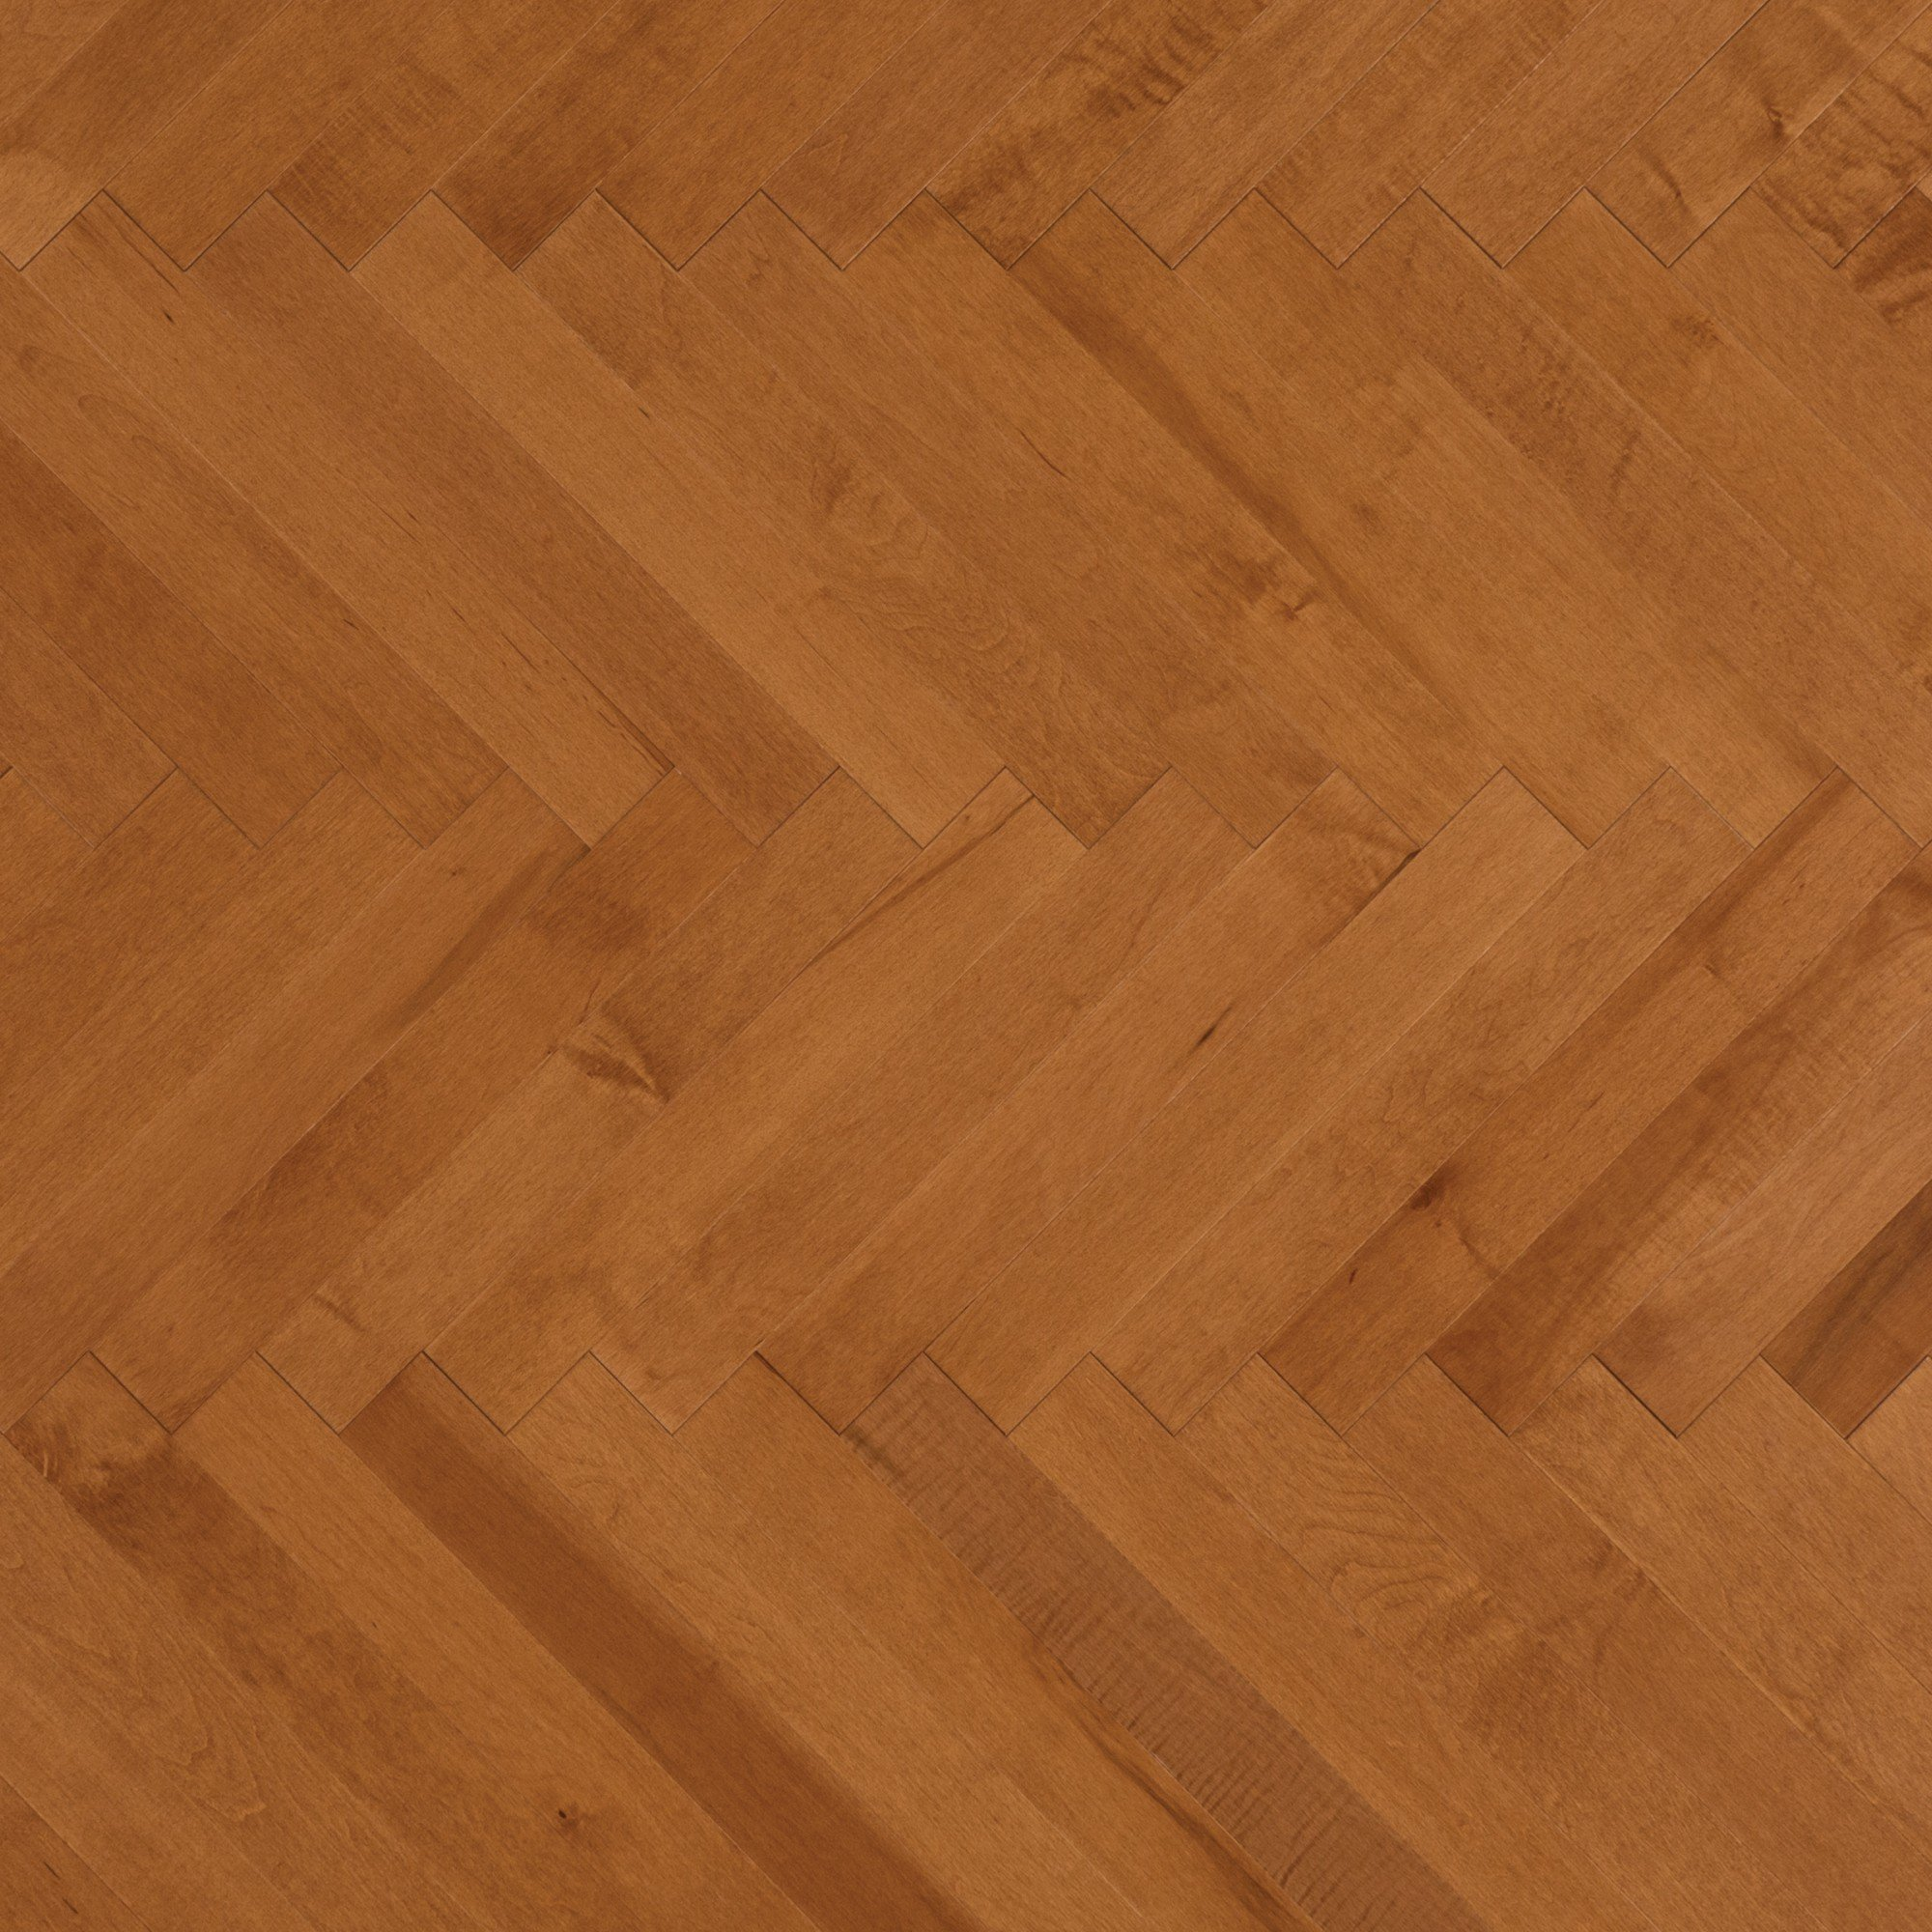 Herringbone maple nevada mirage hardwood floors for Mirage wood floors